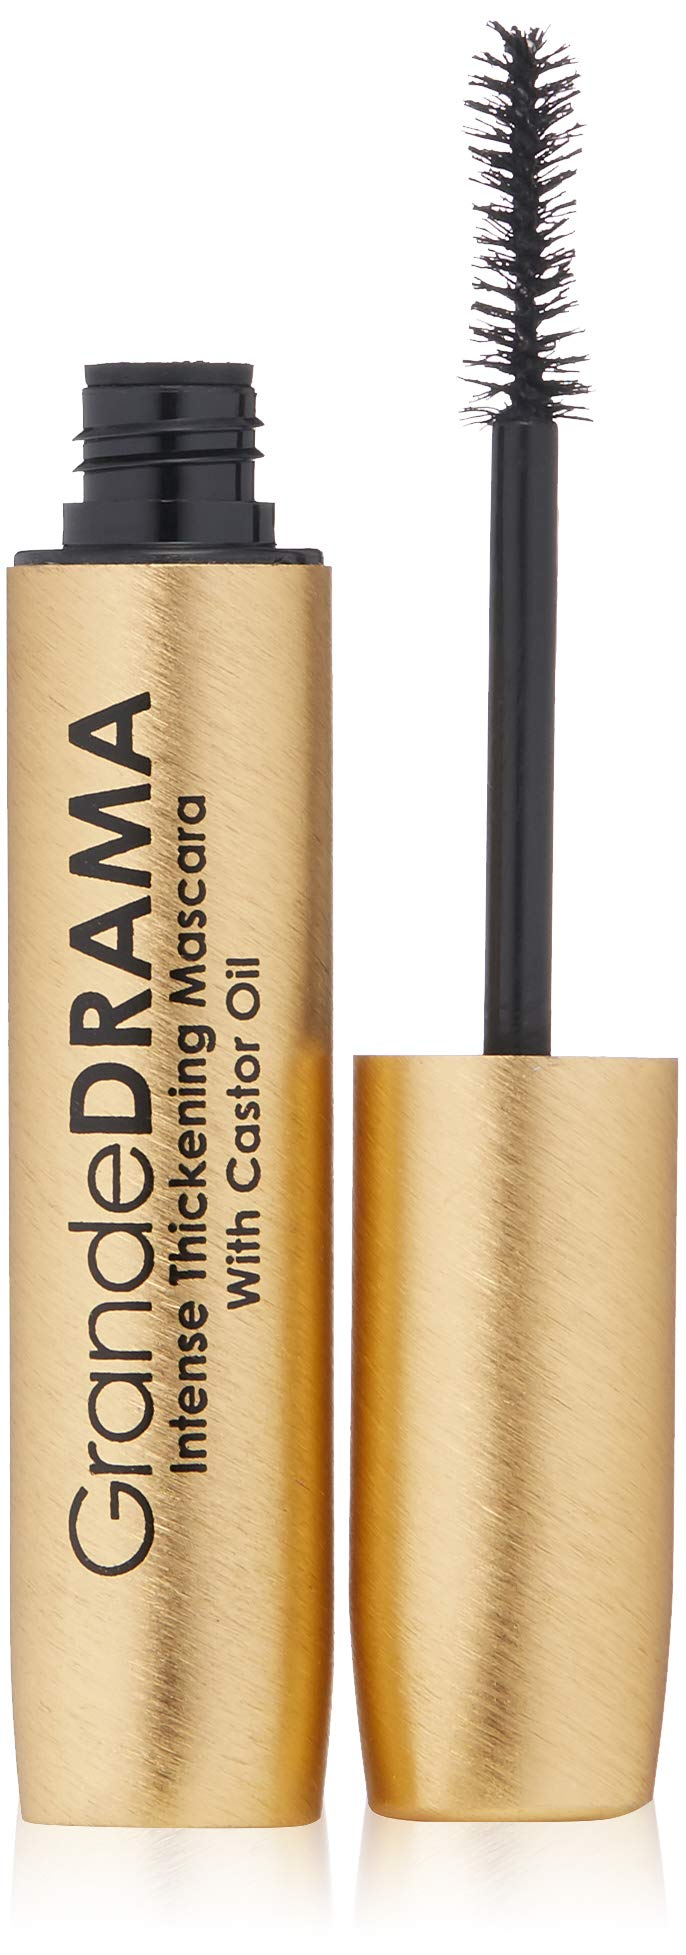 GrandeDRAMA Intense Thickening Mascara with Castor Oil